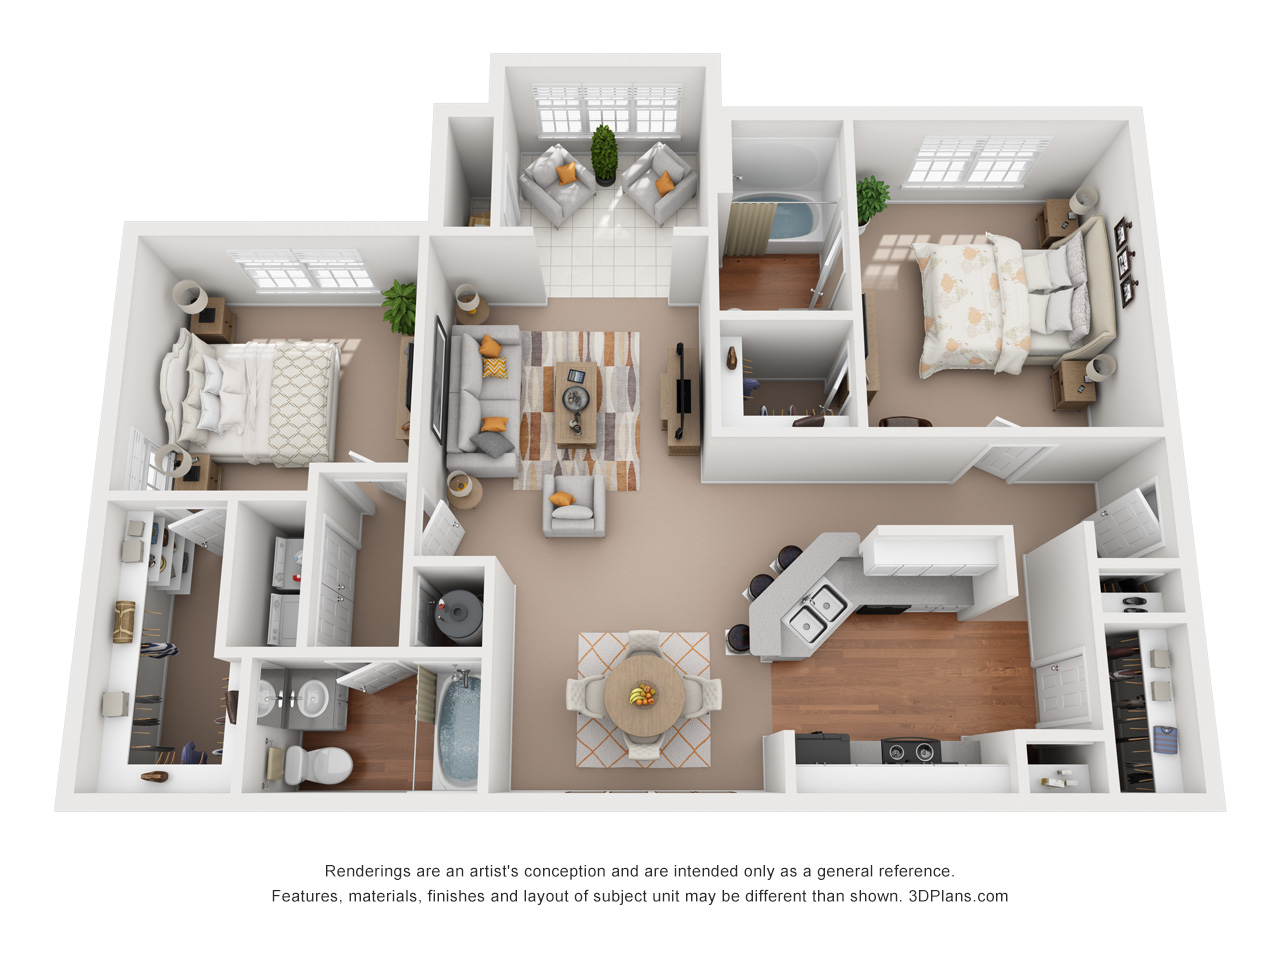 Floorplan - The South Hampton image